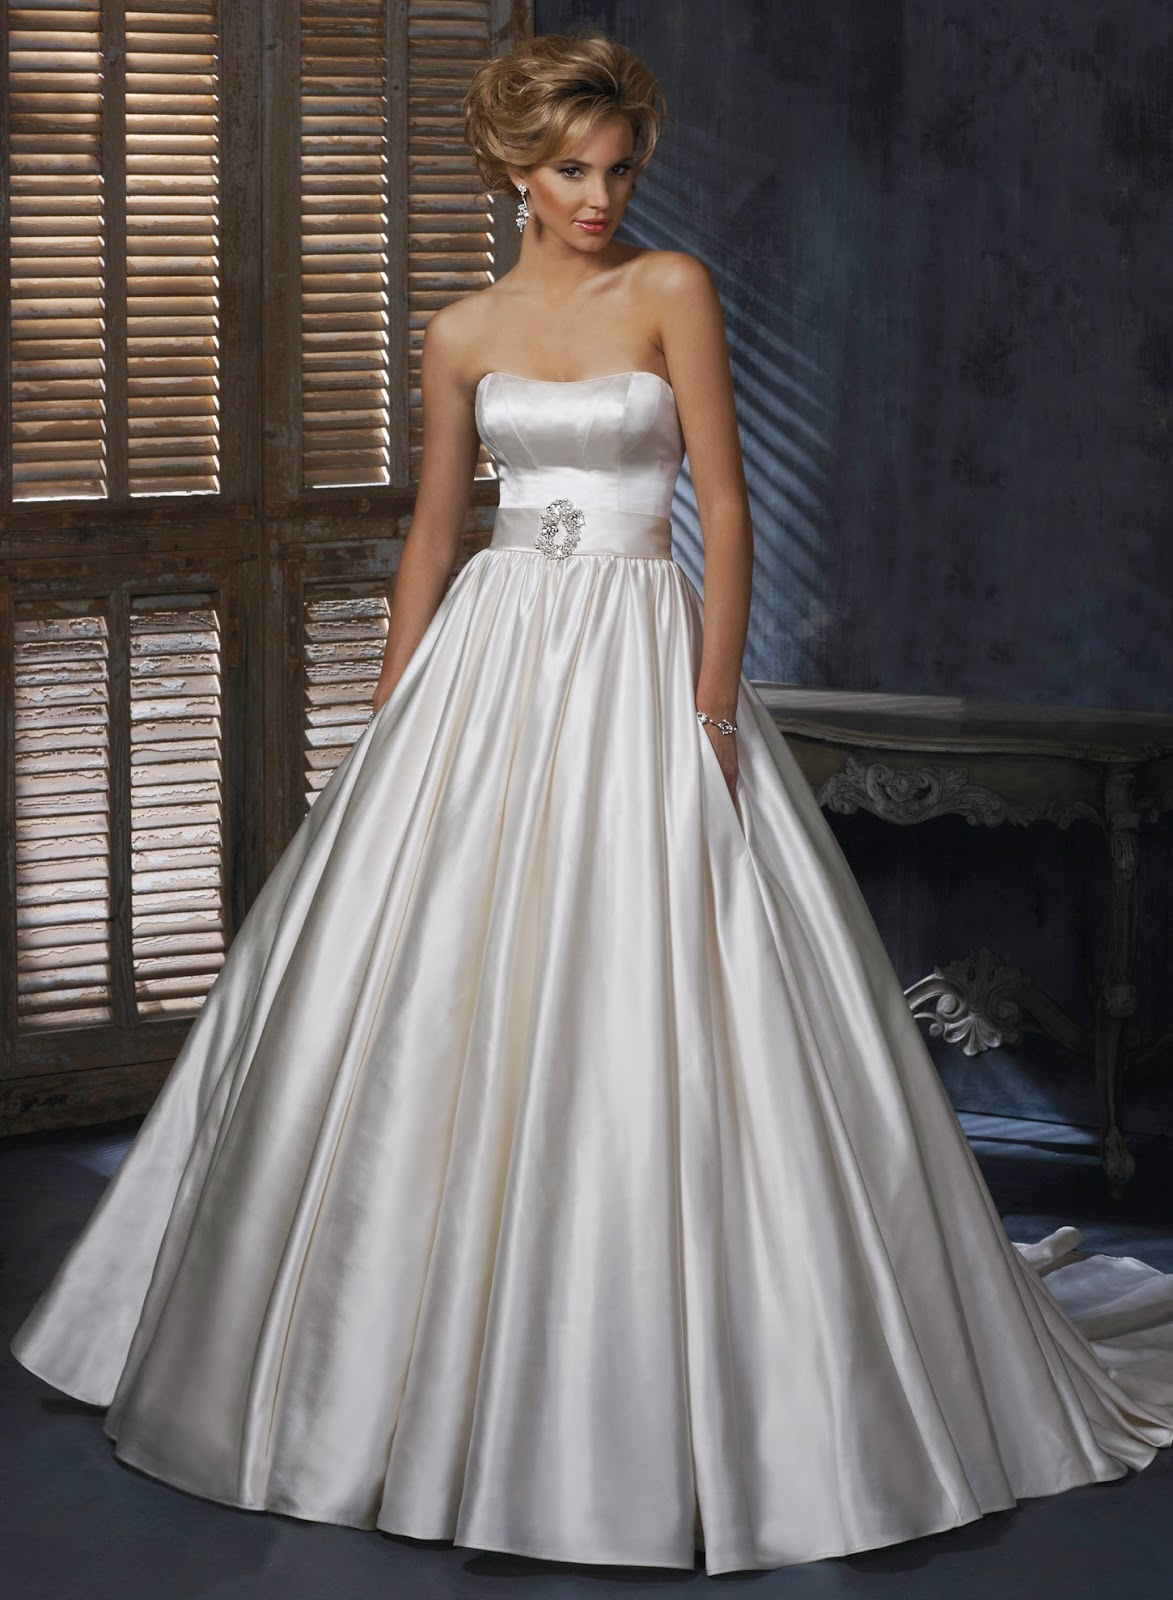 Beautiful satin wedding dress with belt wedding concept for Satin belt for wedding dress